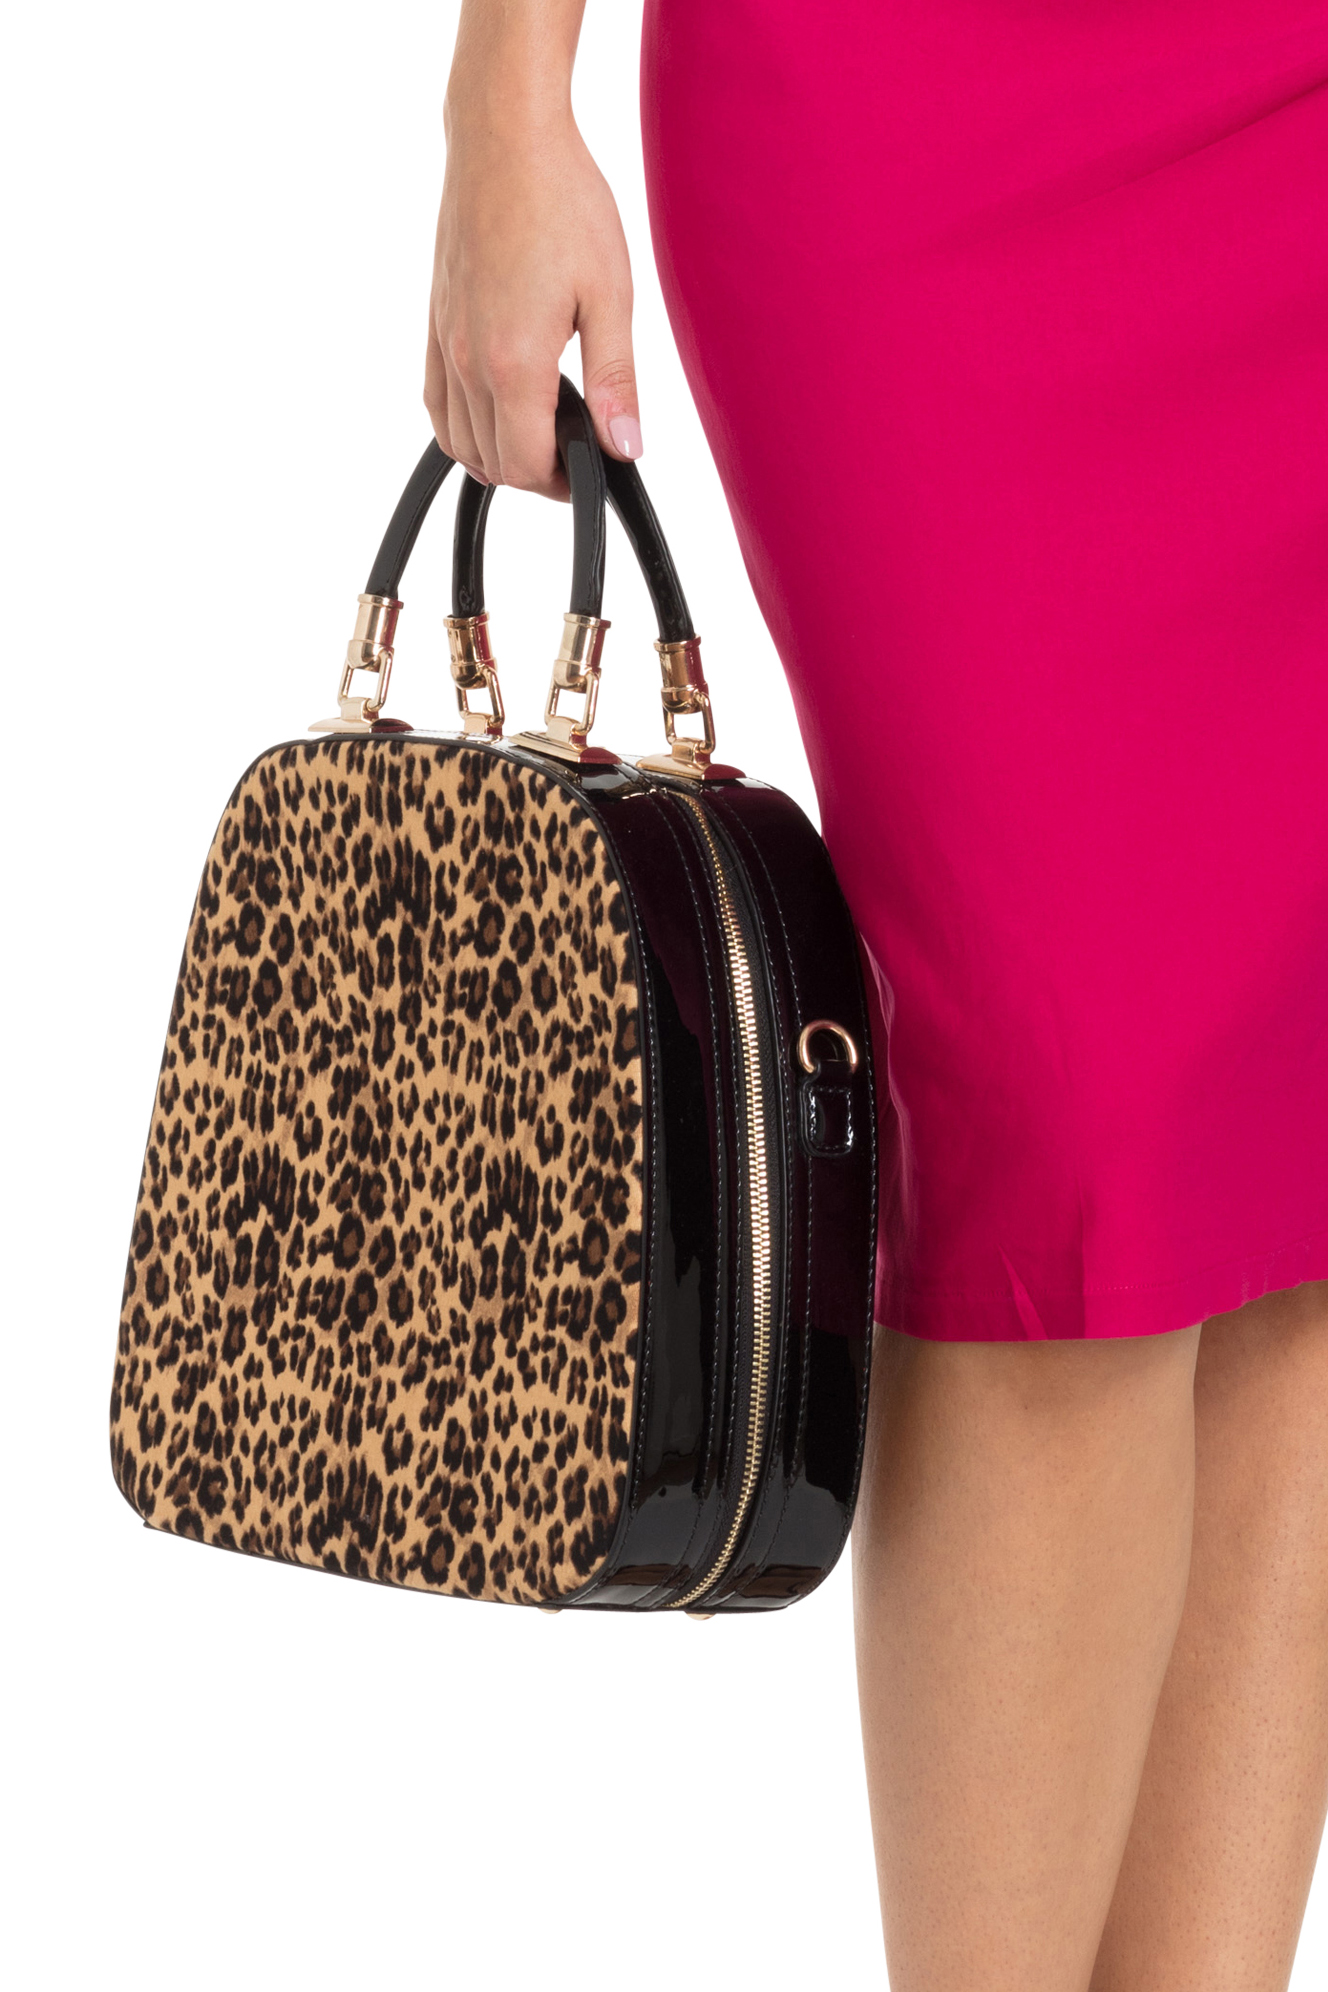 b3e516bdcd Our Leopard Clutch Bag is the fierce little number that s adorable as it is  paw-sitively reto. Featuring a detachable gold chain strap